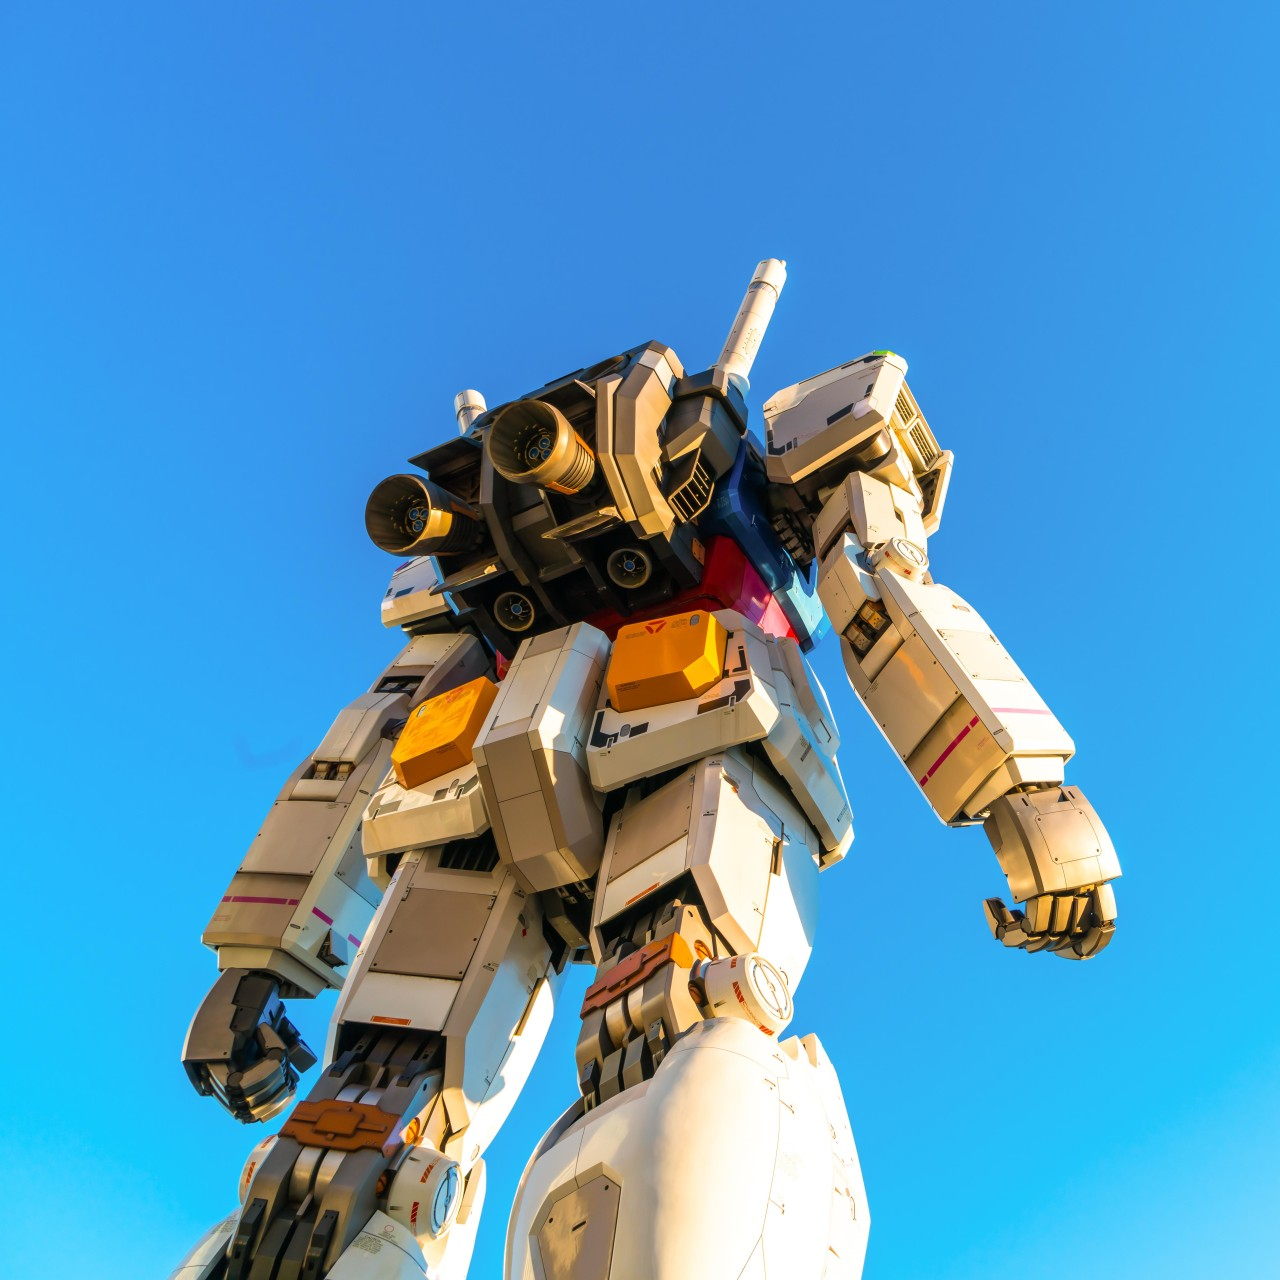 From Astro Boy to Gundam to Ultraman, how Bandai became